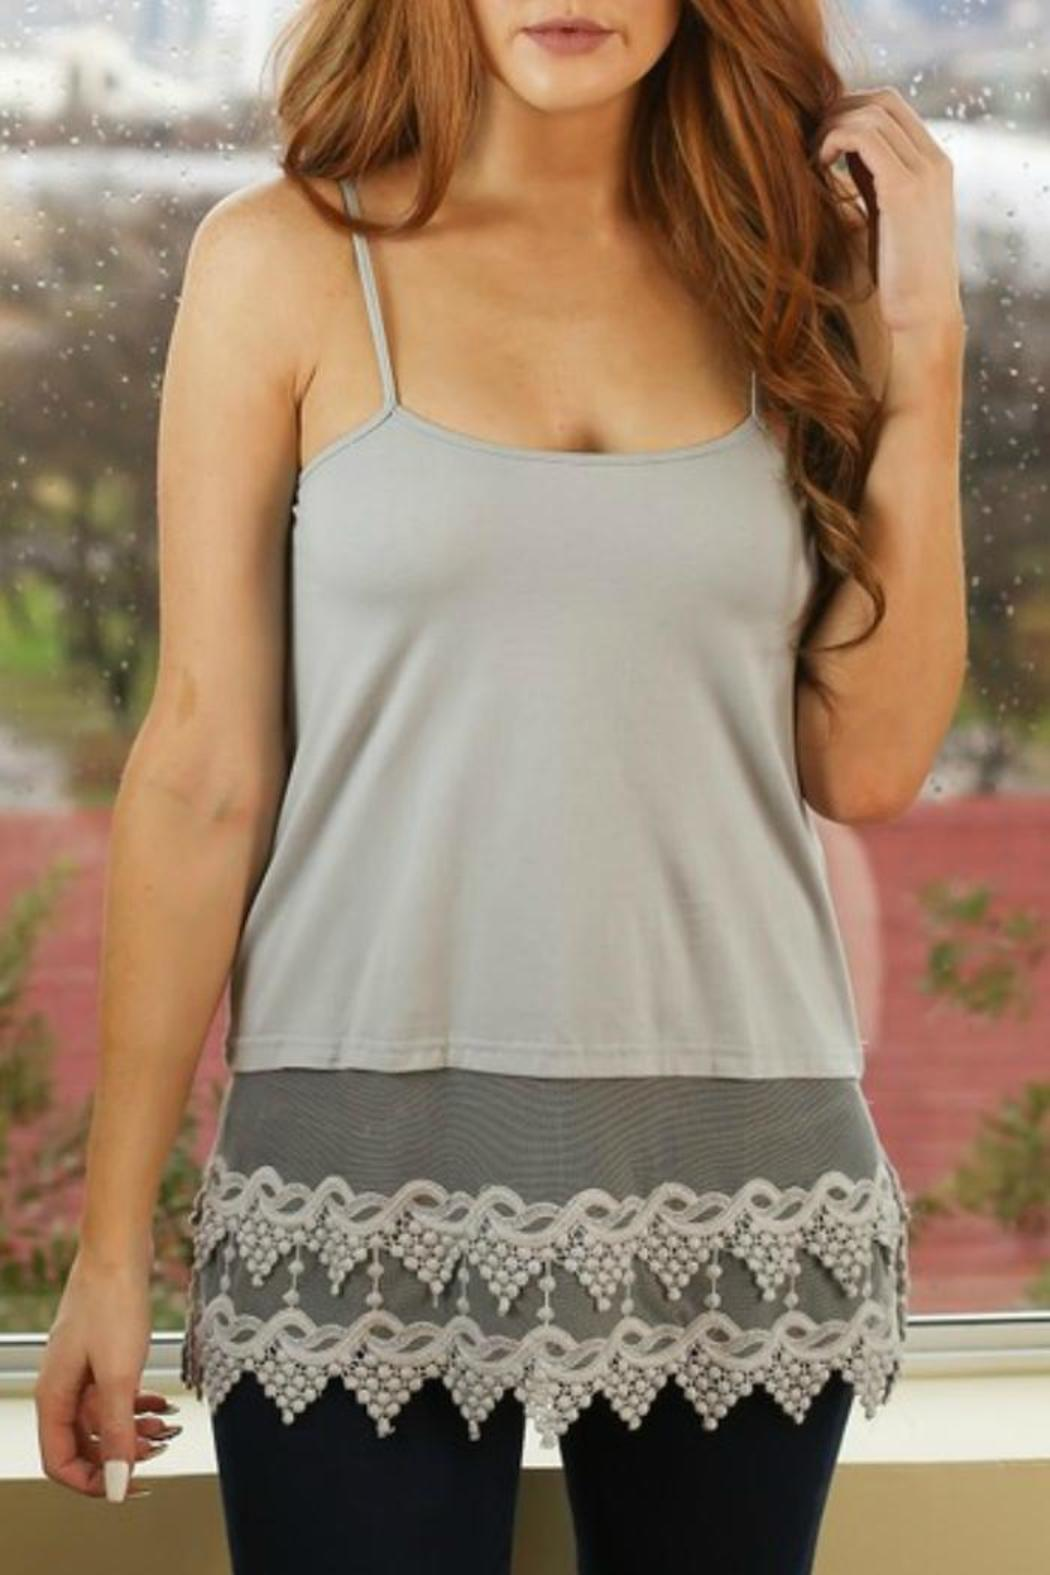 Origami Lace Extender Top from Texas by Dee Dee Style ... - photo#9